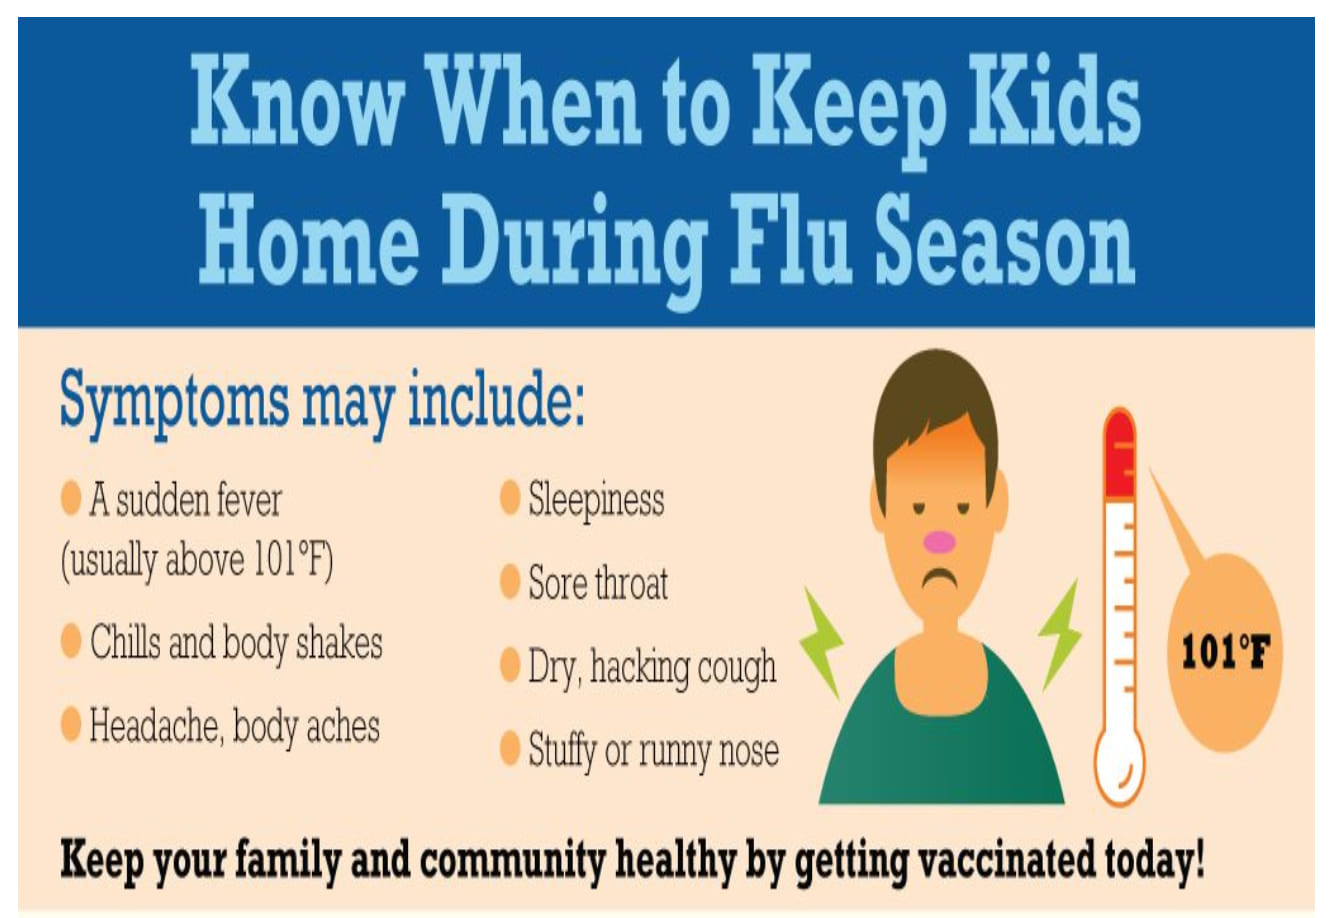 Know when to keep Kids Home During Flu Season